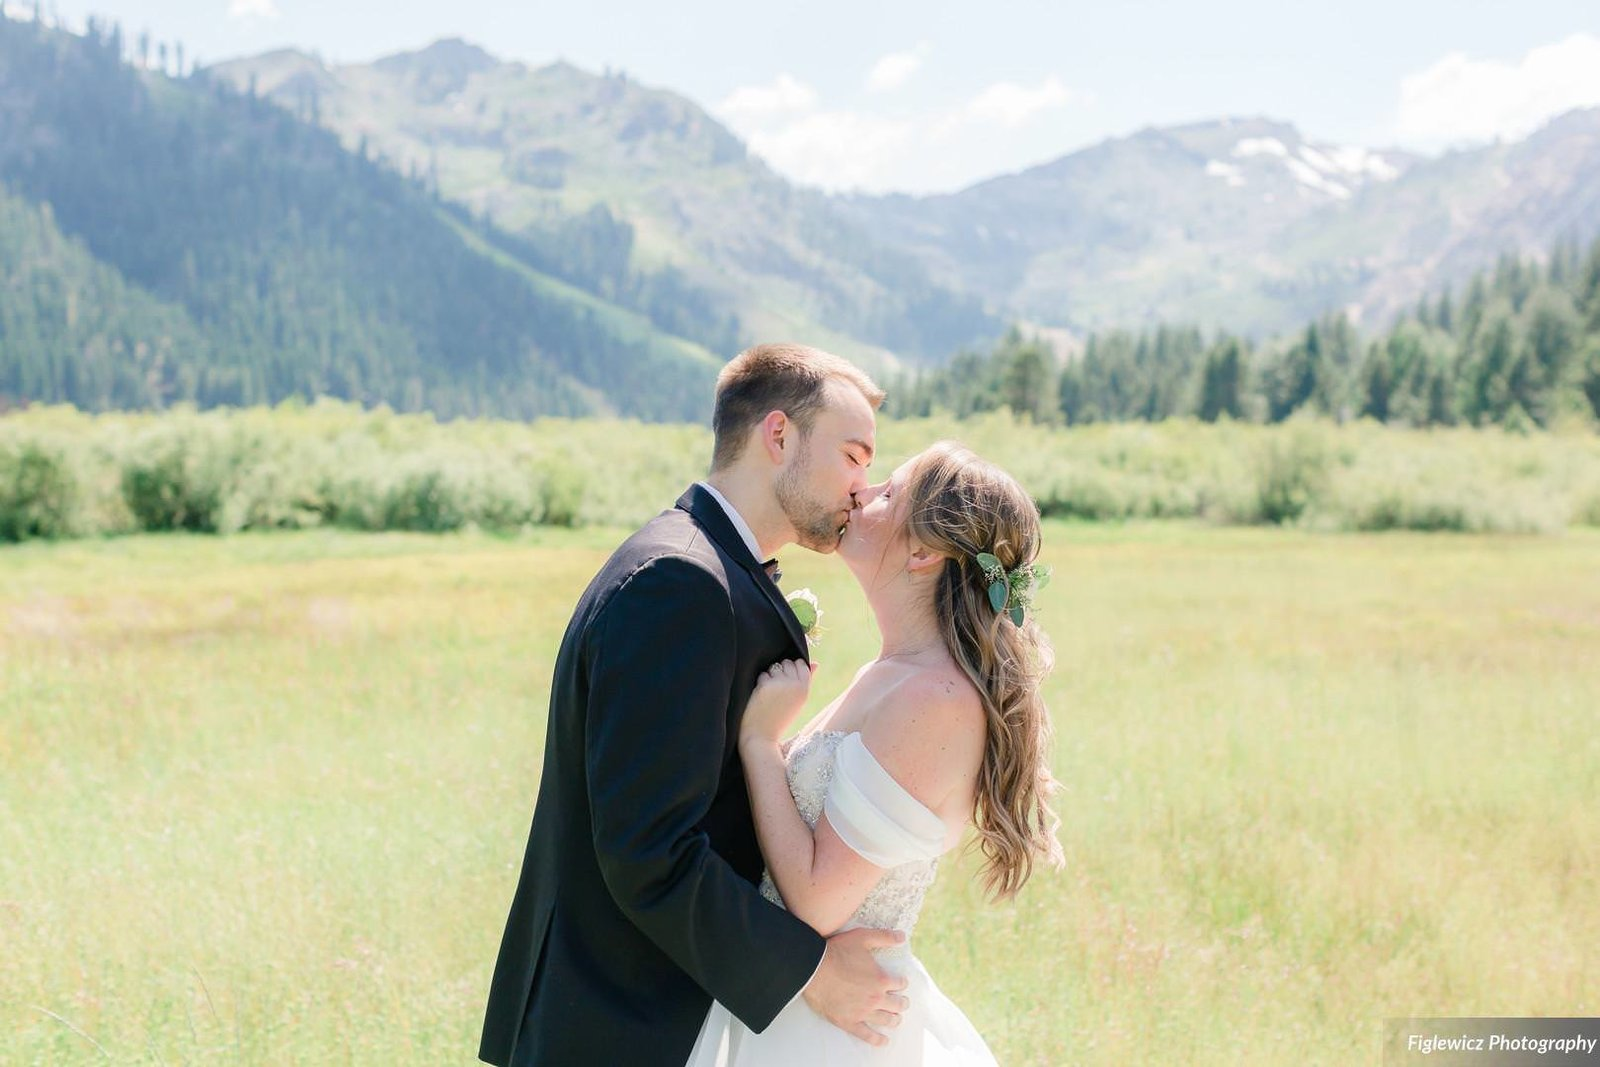 Garden_Tinsley_FiglewiczPhotography_LakeTahoeWeddingSquawValleyCreekTaylorBrendan00028_big